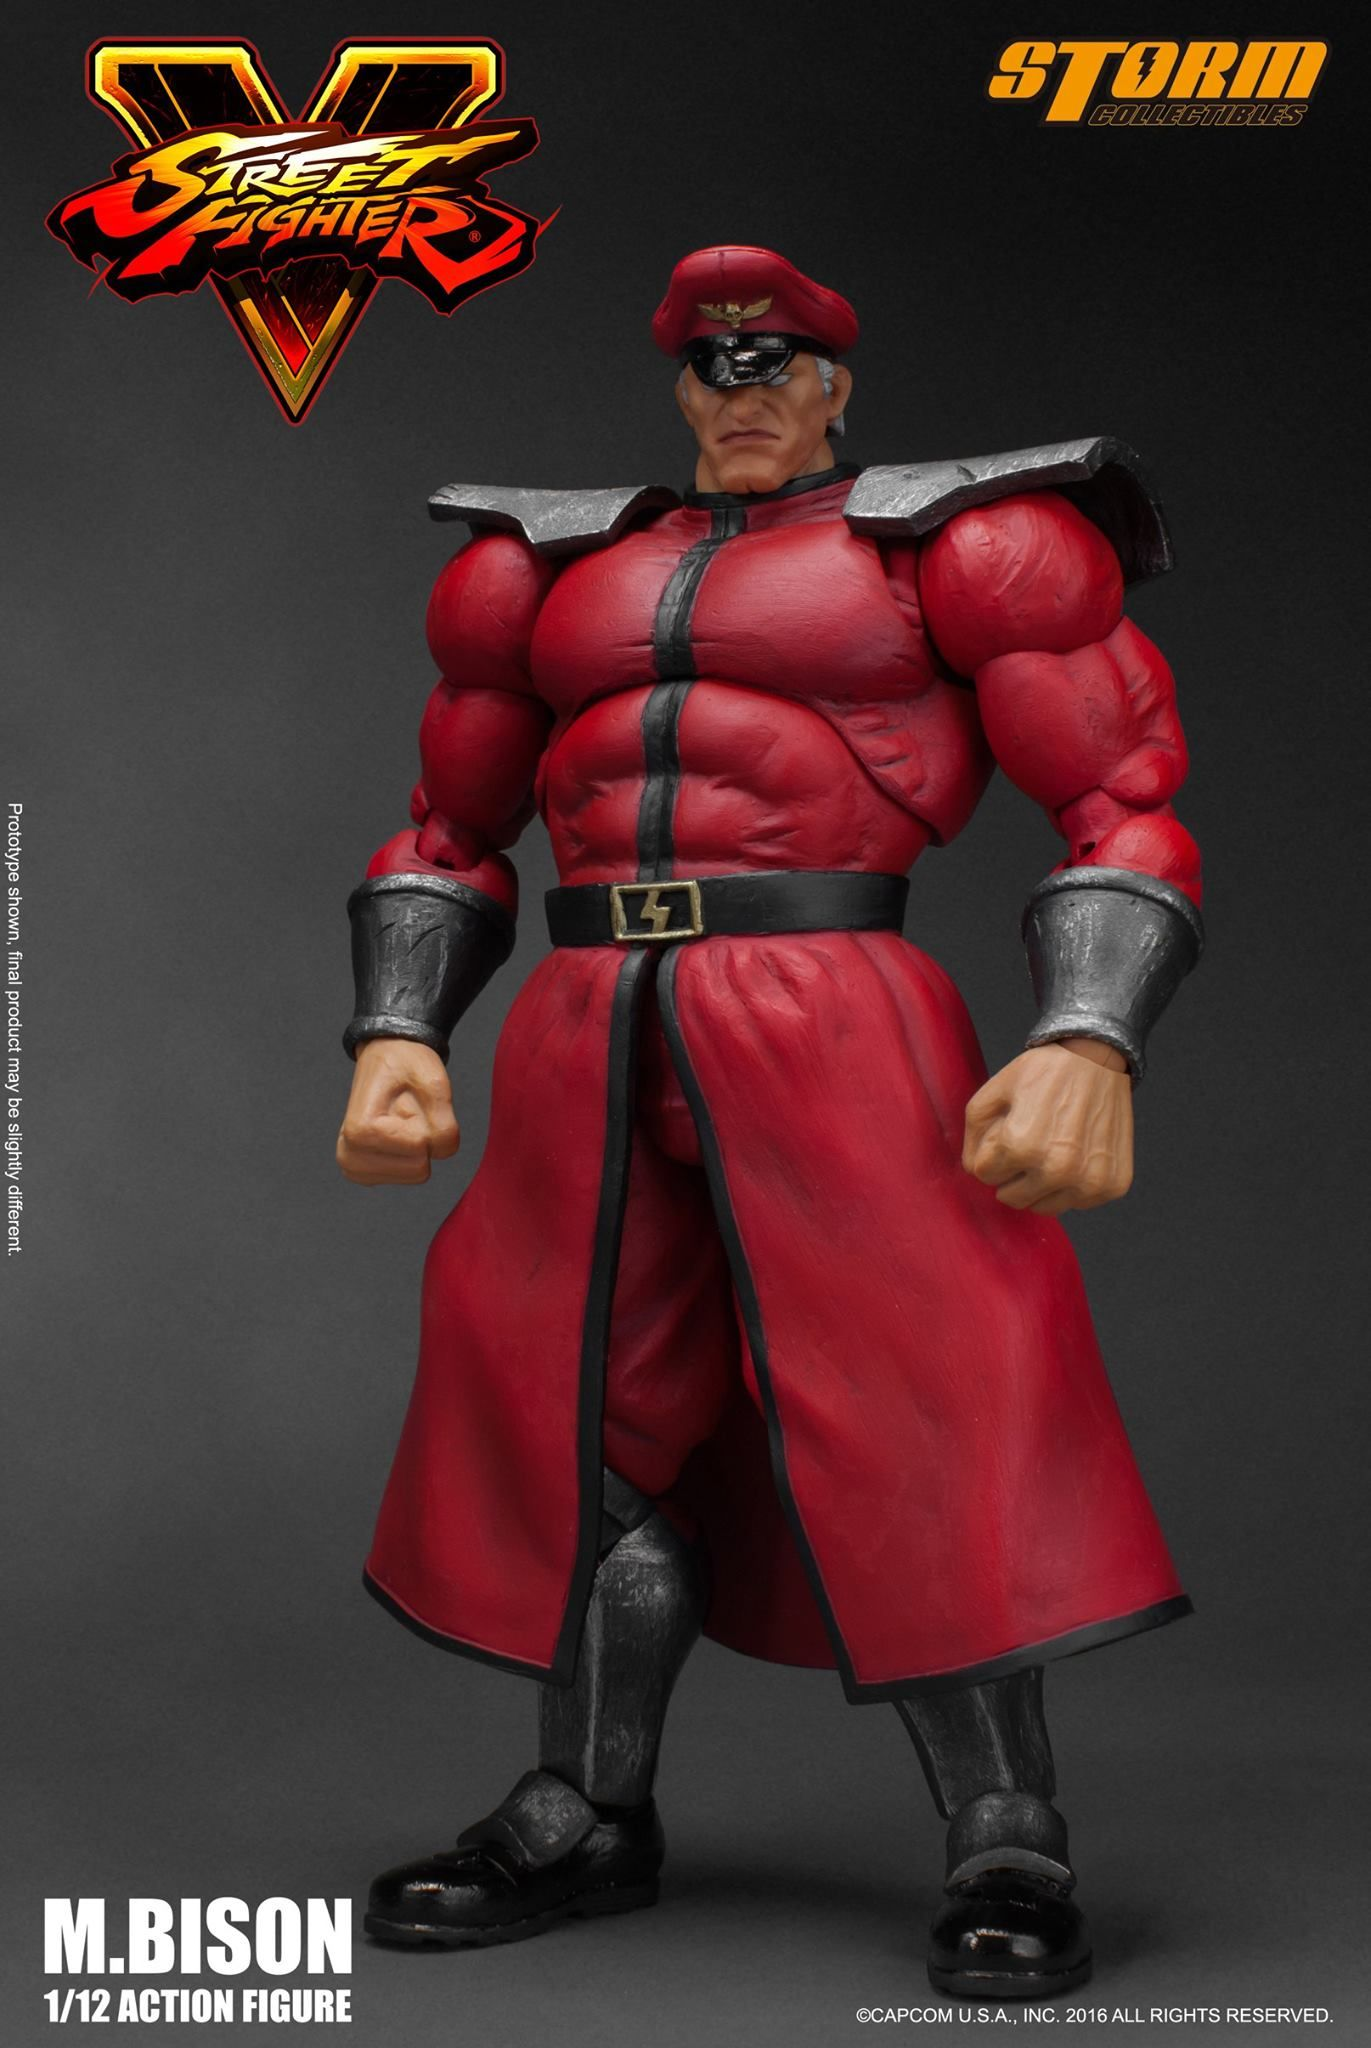 STORM COLLECTIBLES STREET FIGHTER V ALEX ACTION FIGURE 1//12 Preorder